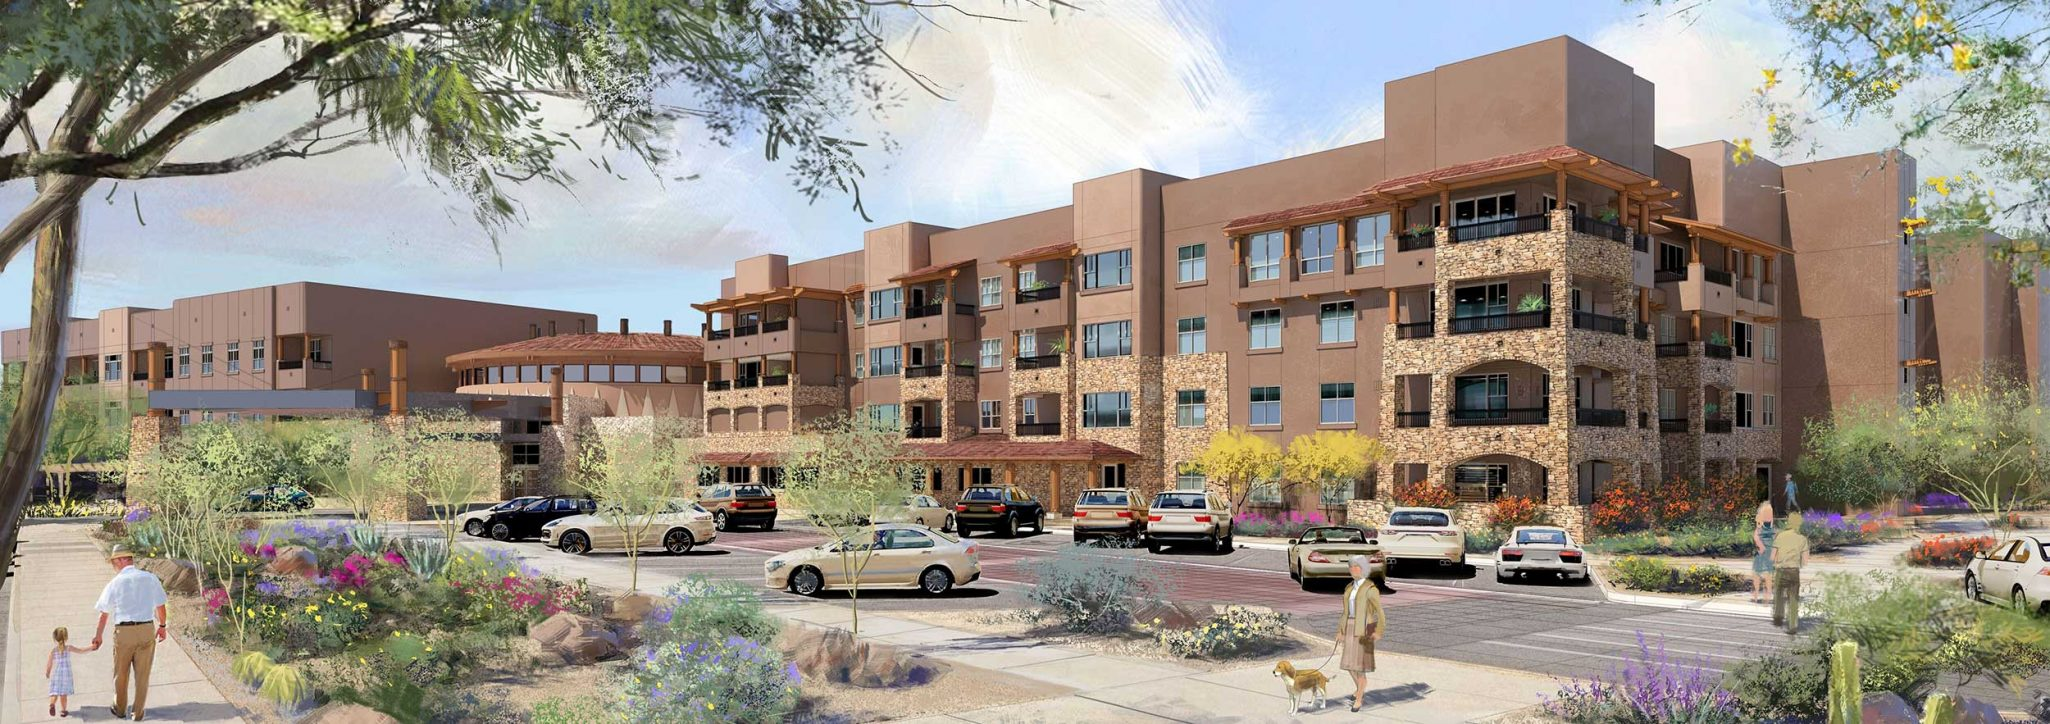 Phase II New Senior Apartments in Phoenix AZ Sagewood